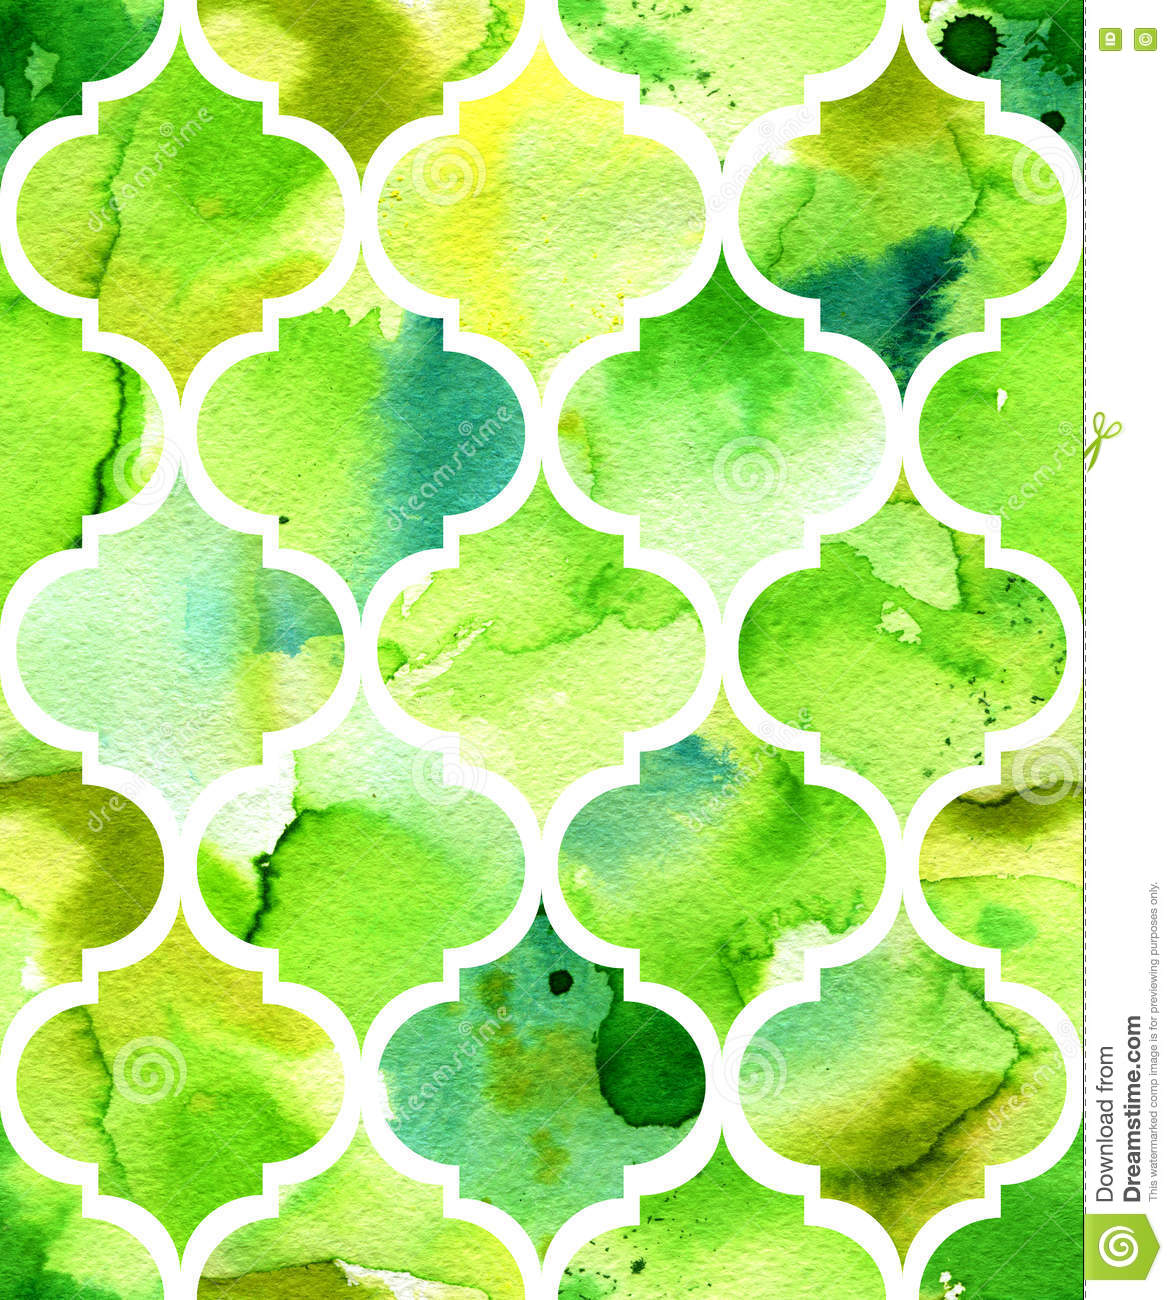 Seamless watercolor background in green. Beautiful pattern in moroccan style.